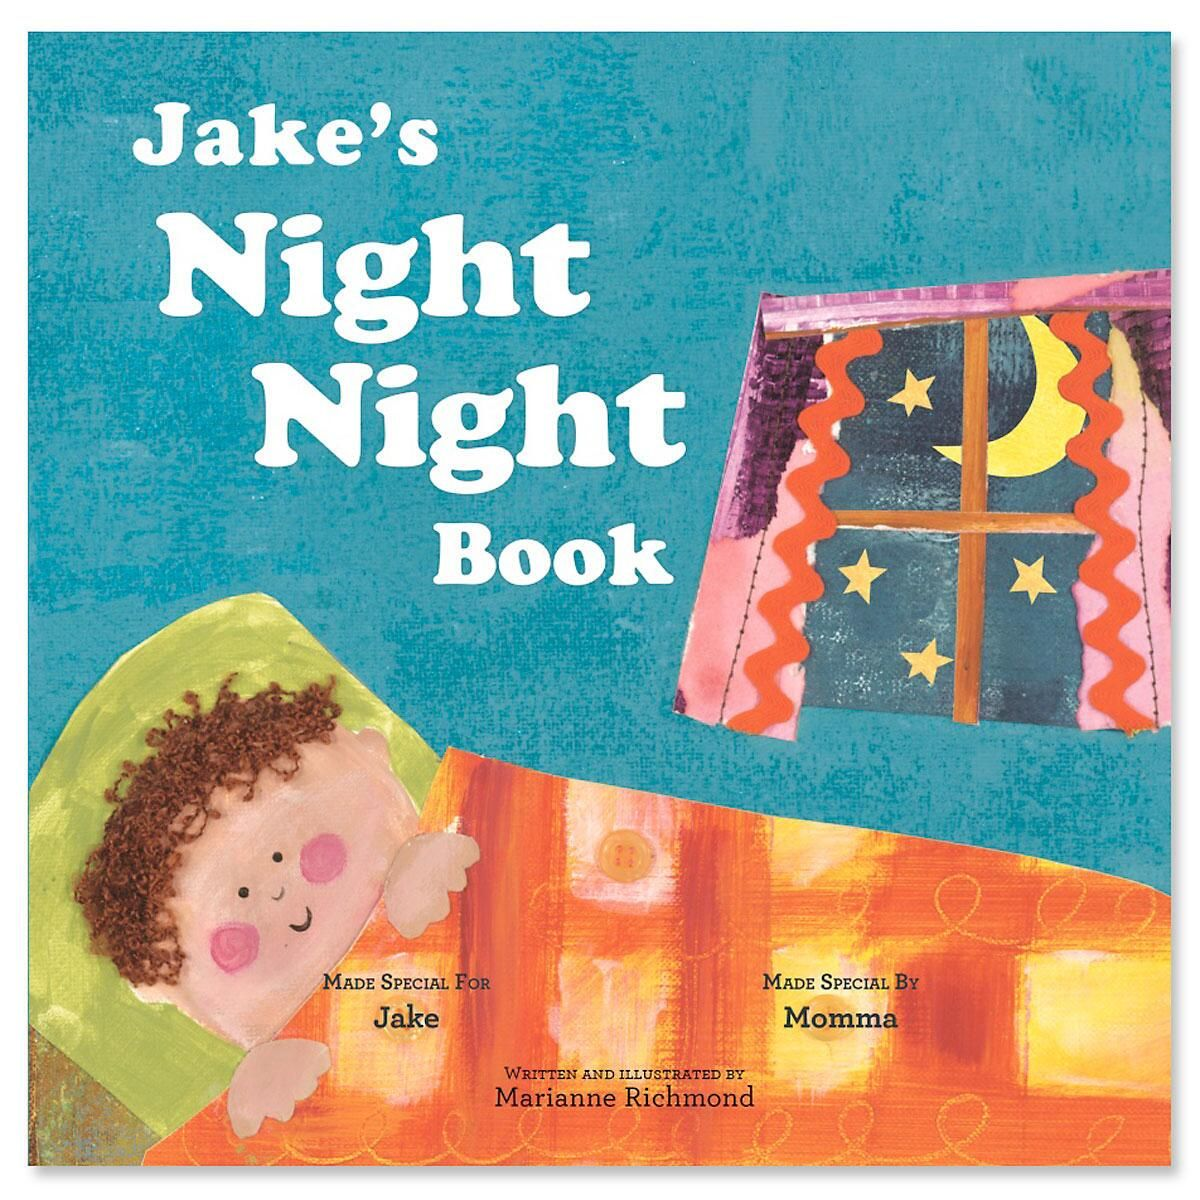 My Night Night Personalized Storybook